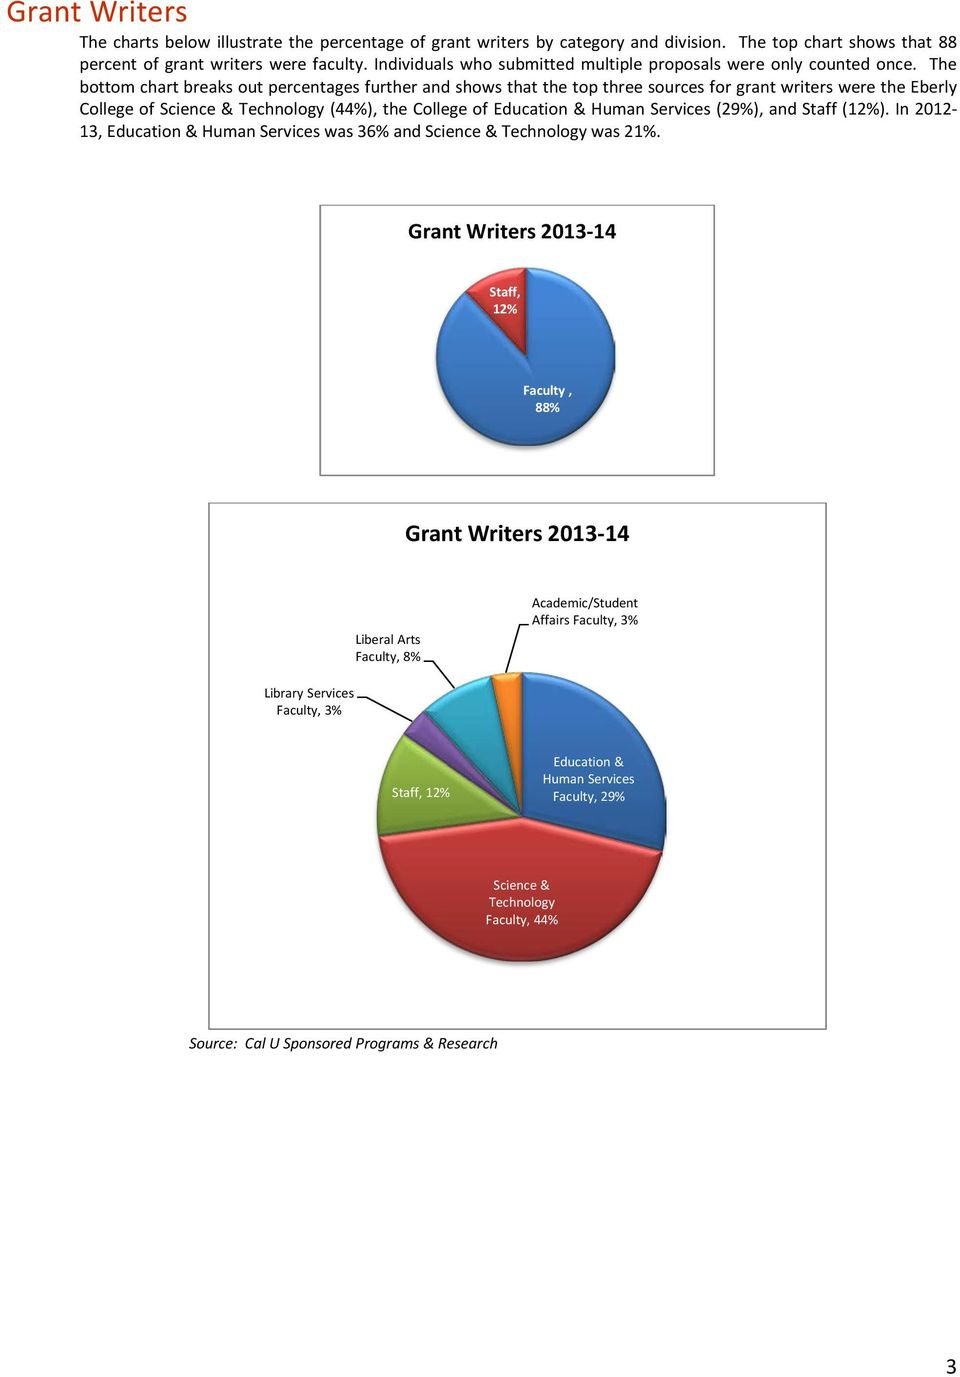 The bottom chart breaks out percentages further and shows that the top three sources for grant writers were the Eberly College of Science & Technology (44%), the College of Education & Human Services